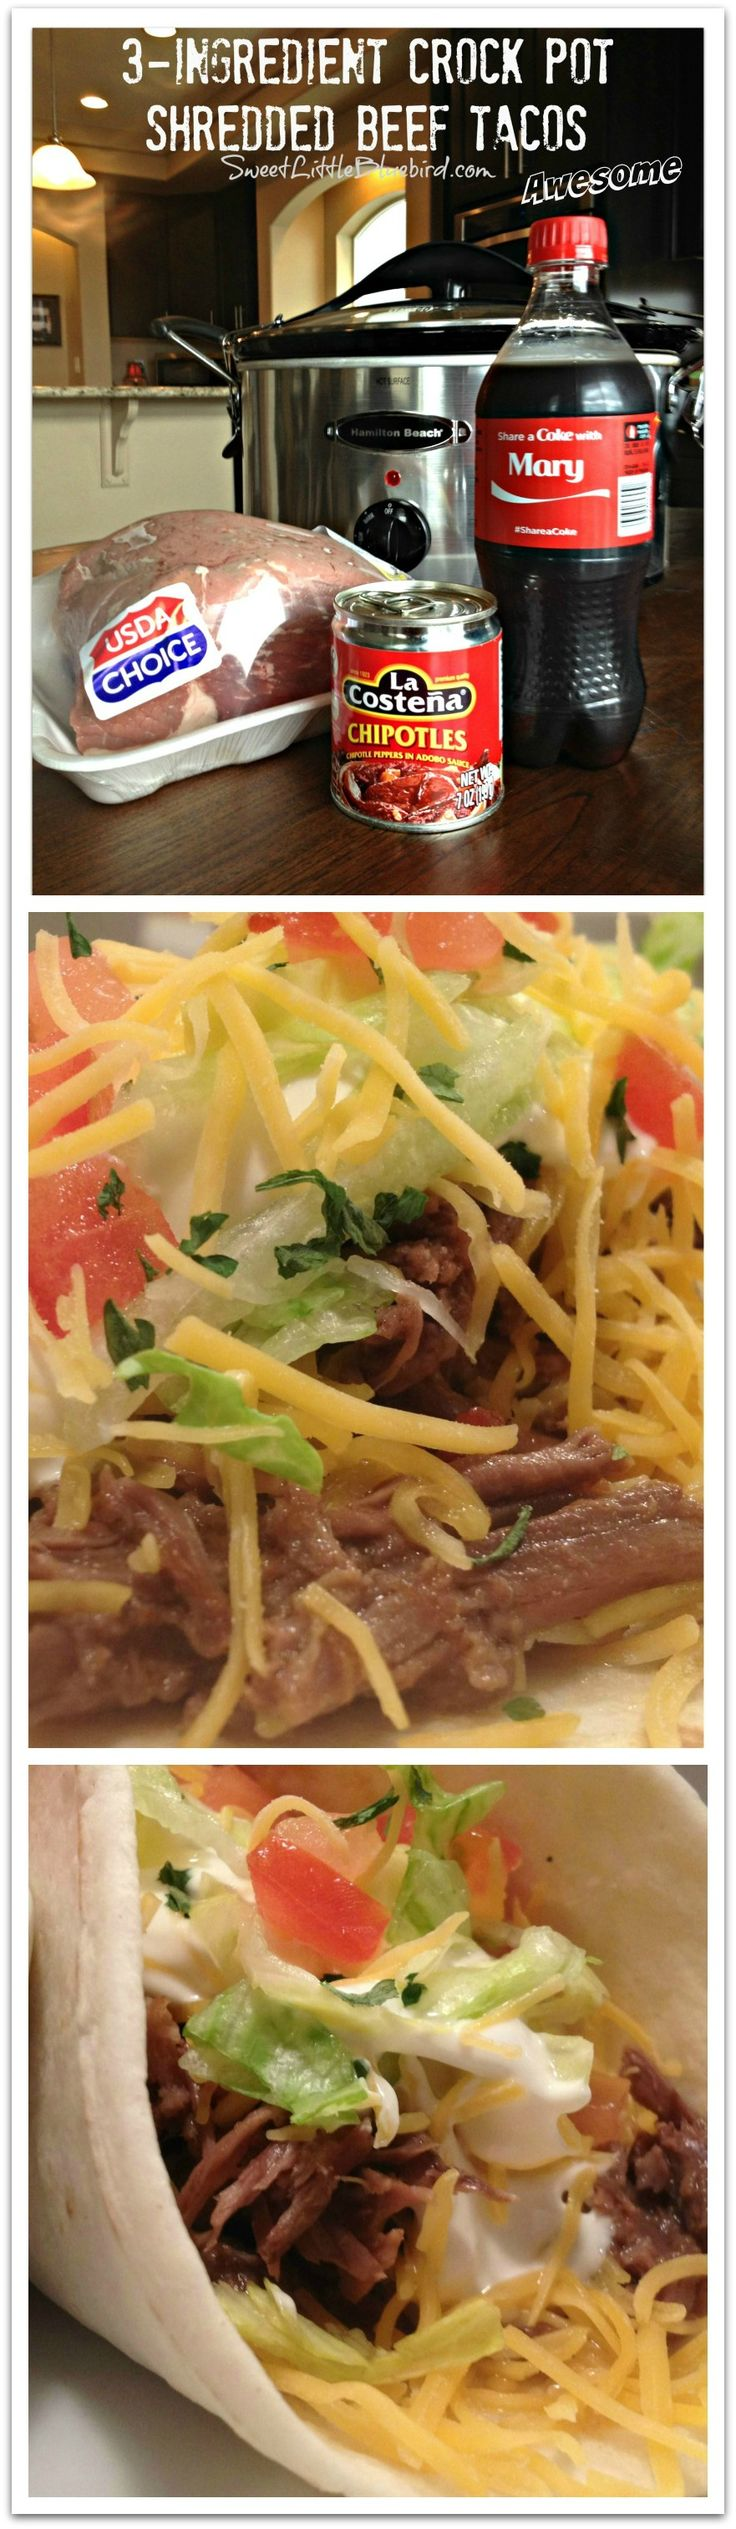 AWESOME 3-INGREDIENT CROCK POT SHREDDED BEEF TACOS!!! Tried & True recipe - So darn good, I am kicking myself for not trying this recipe sooner!  |  SweetLittleBluebird.com